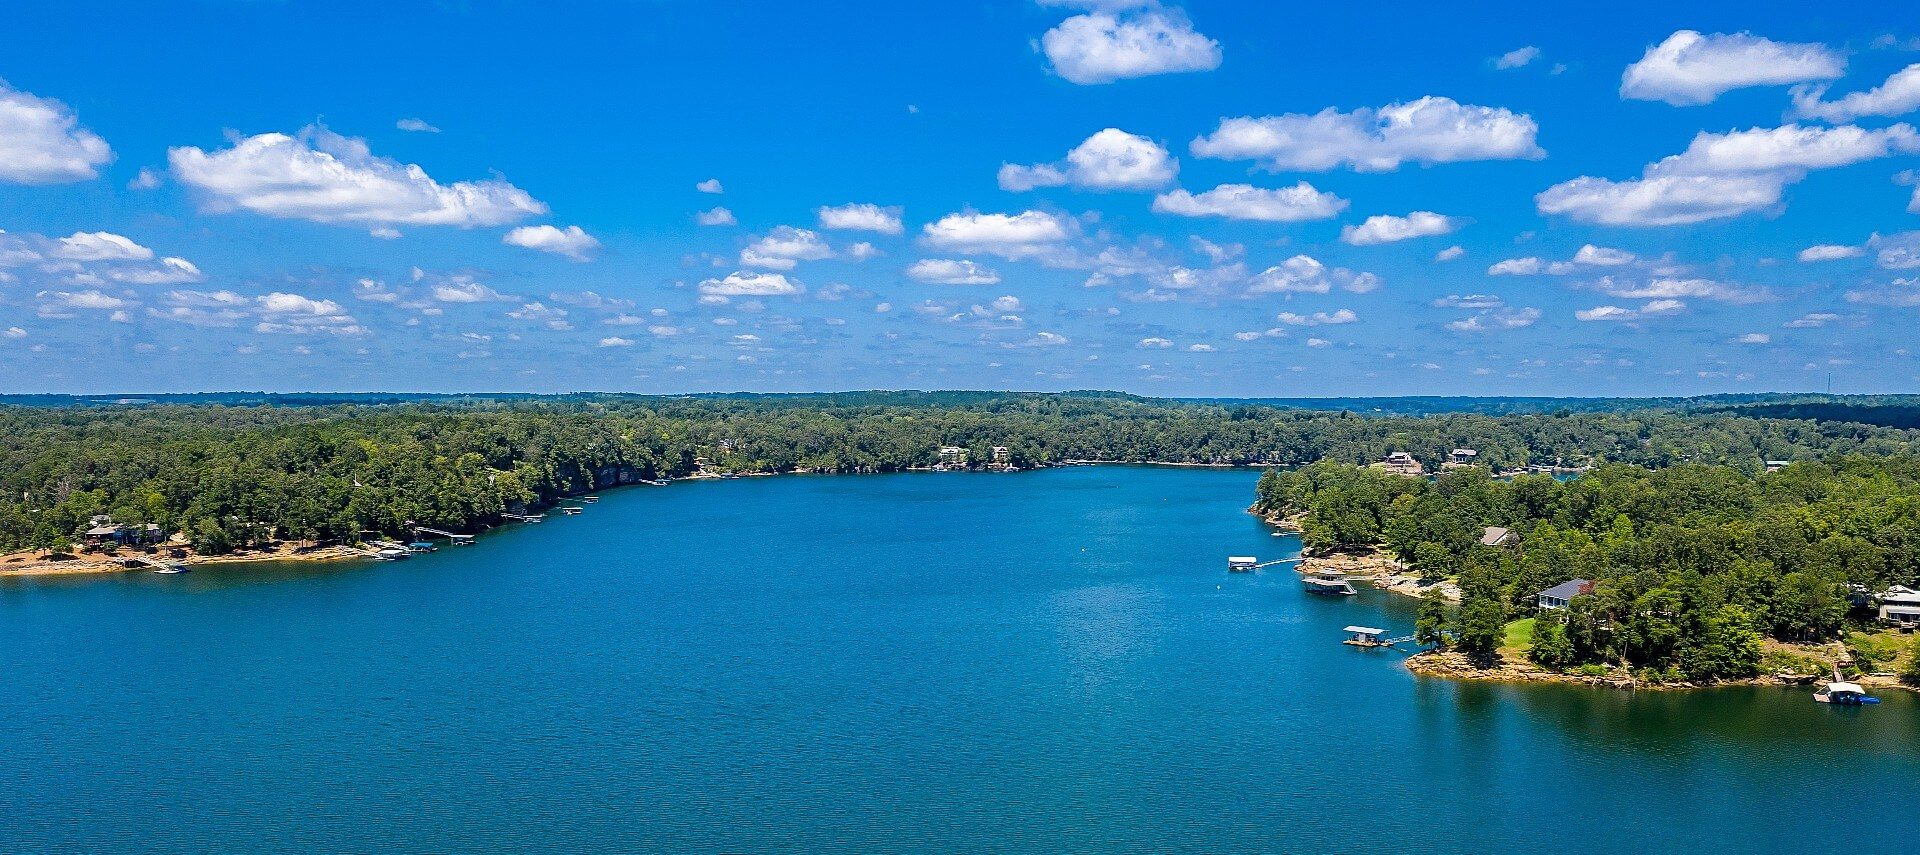 Panoramic view of large clear blue lake with houses and docks on the edge against a backdrop of blue sky and some white clouds